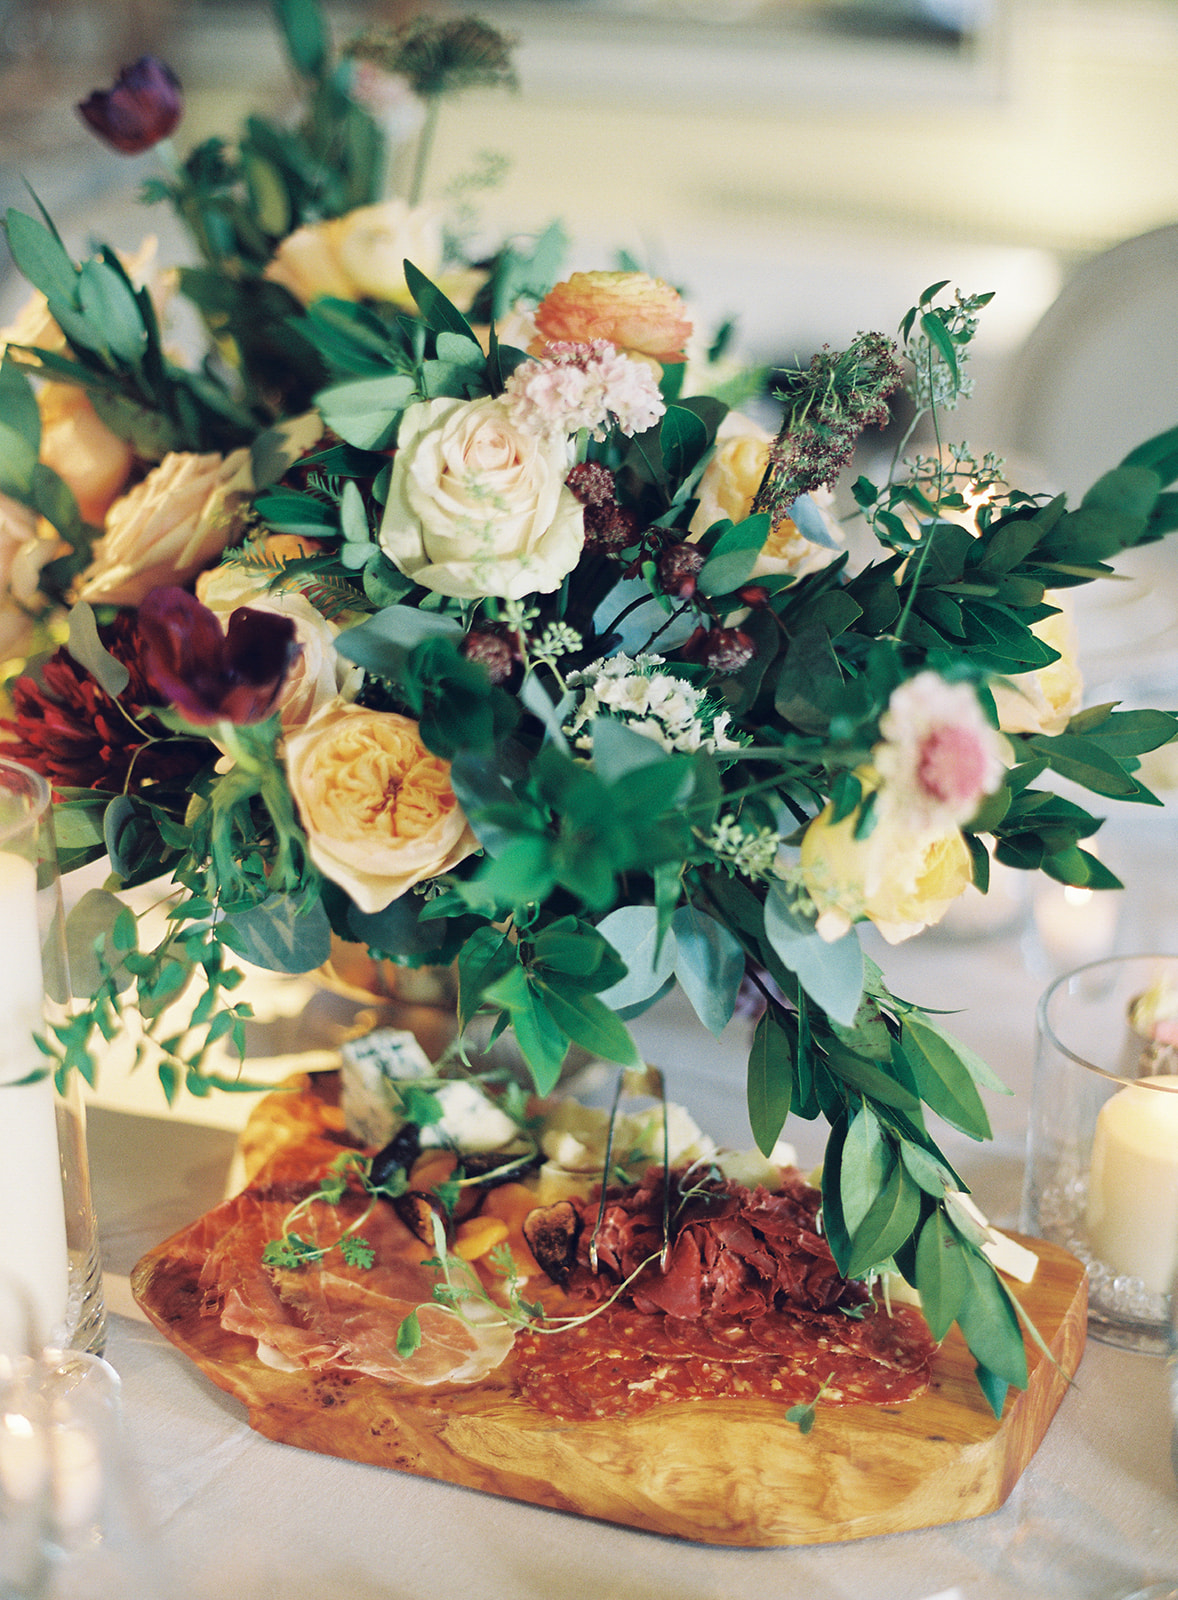 Centerpieces in antique gold footed bowls